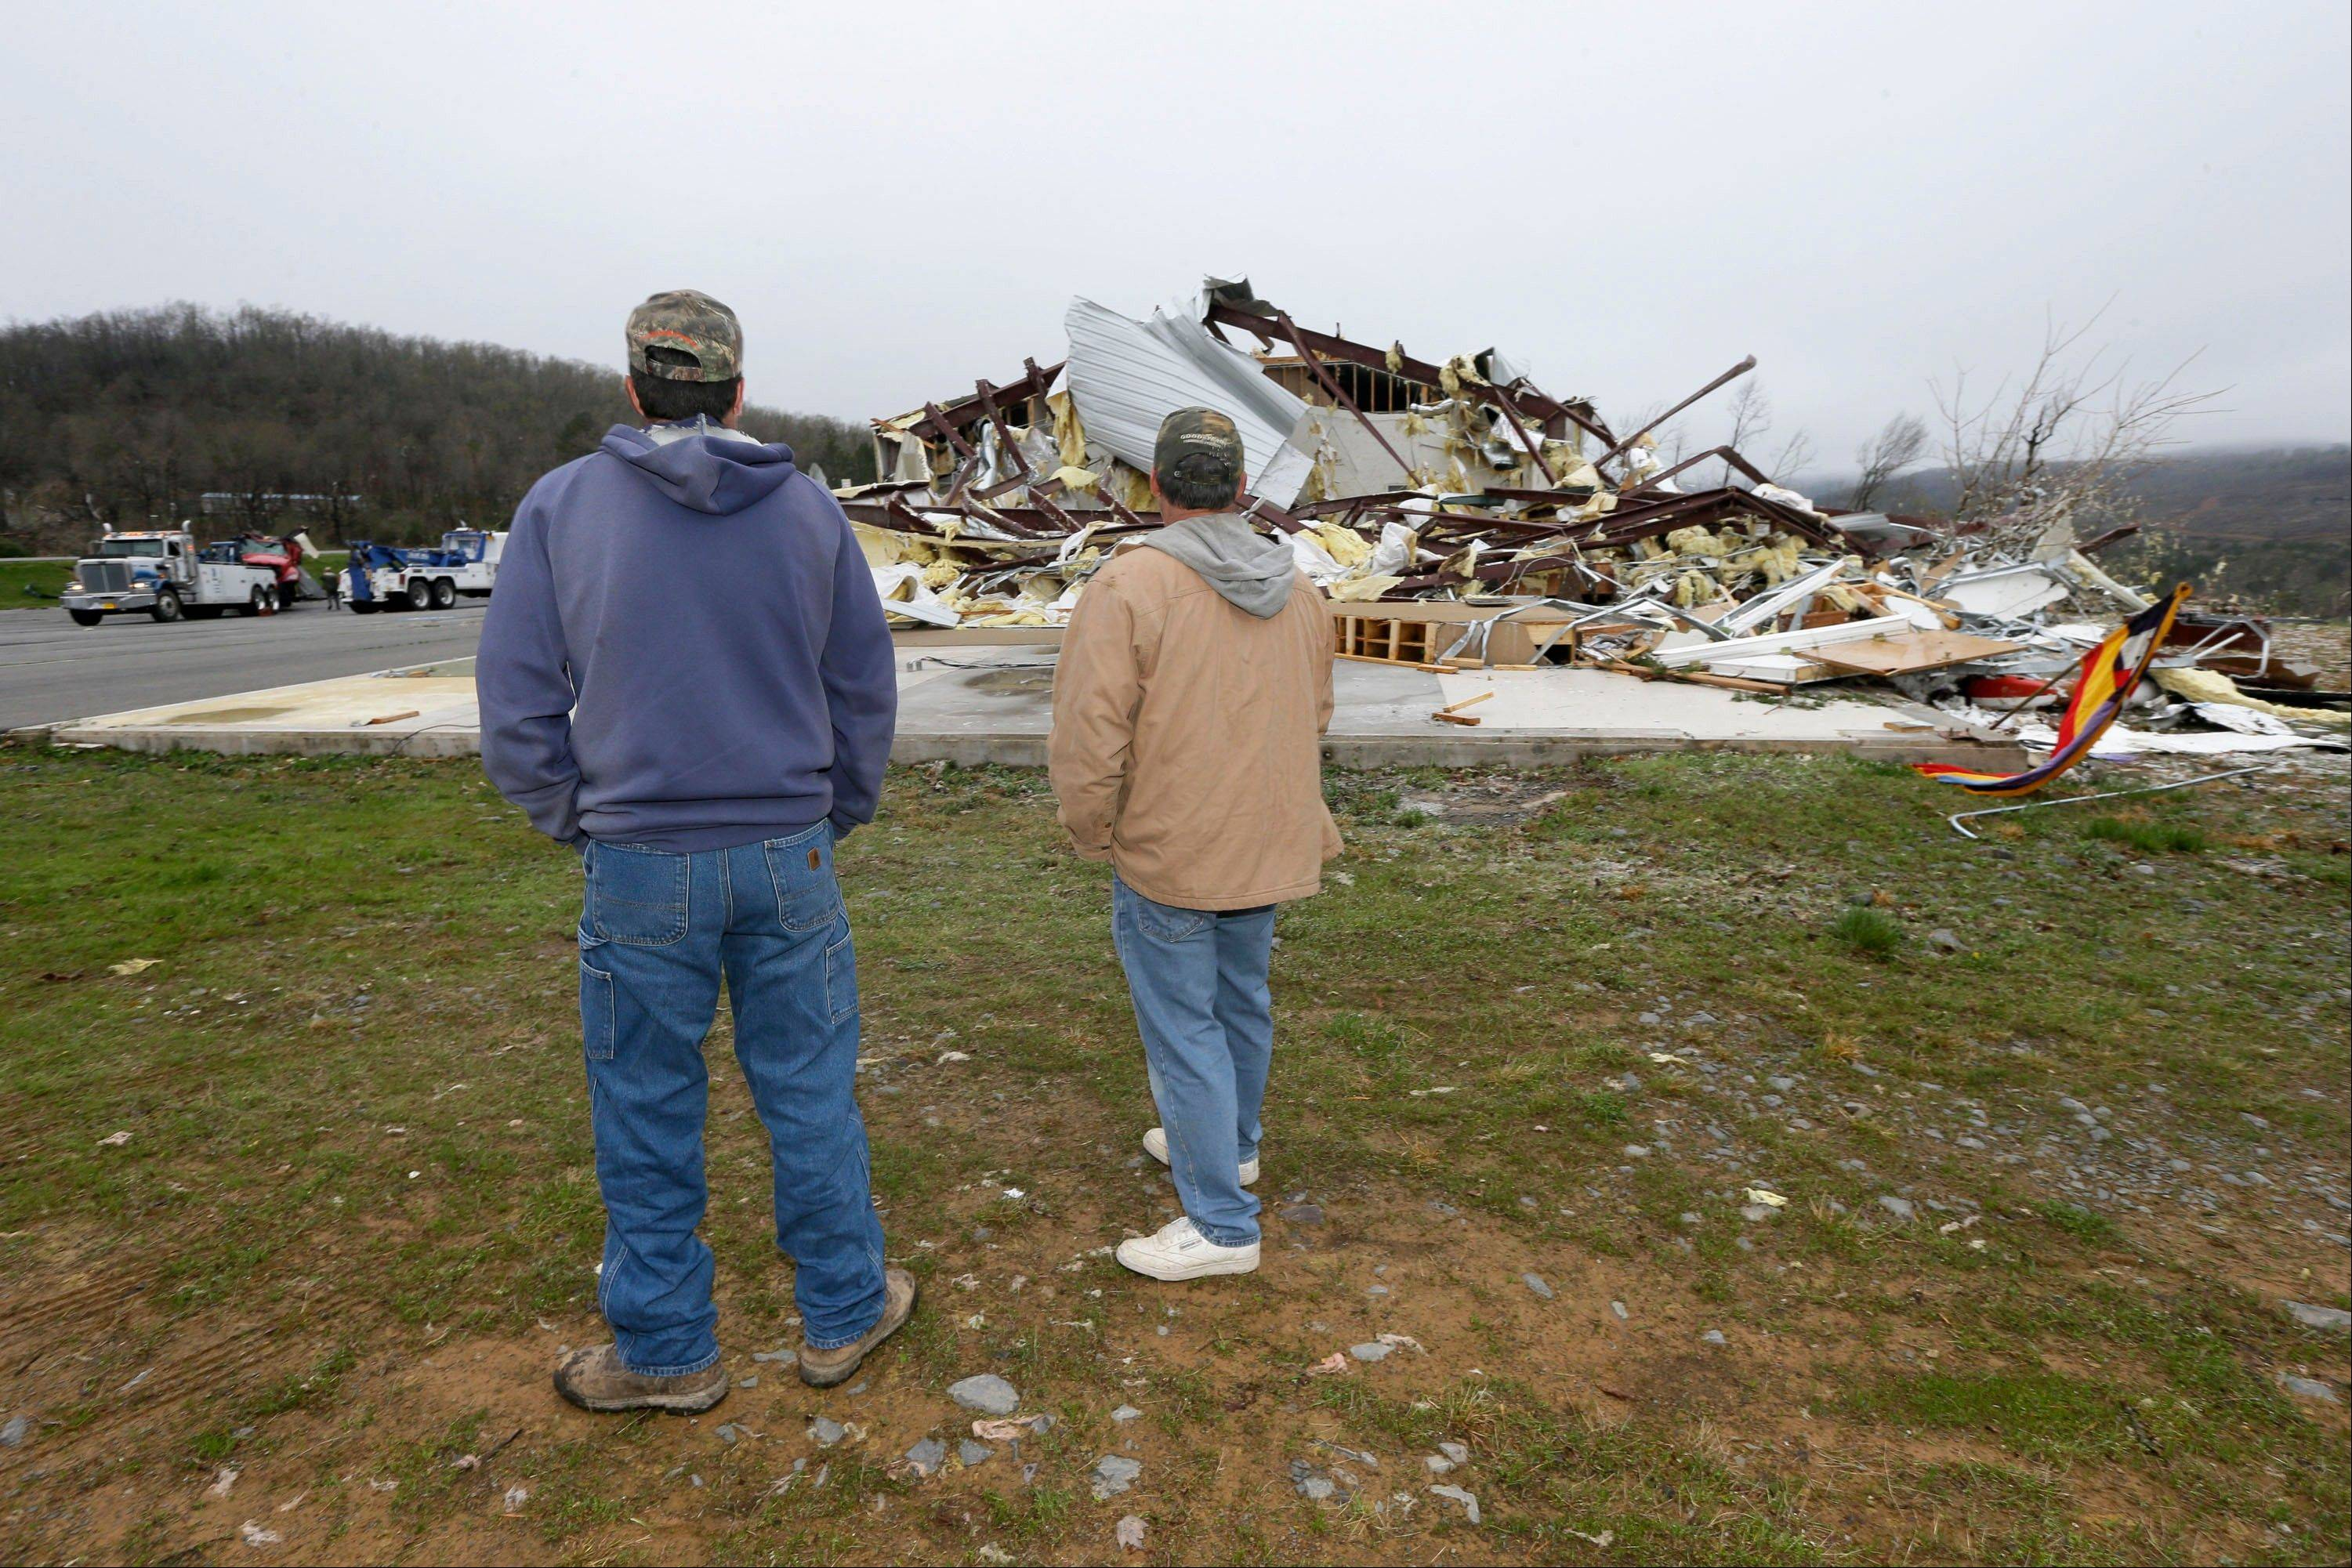 Larry Gammill, left, and Tim Parks survey tornado damage at Botkinburg Foursquare Church in Botkinburg, Ark., Thursday, April 11, 2013, after a severe storm struck the building late Wednesday. The National Weather Service is surveying areas Thursday to determine whether tornadoes or strong winds caused damage.